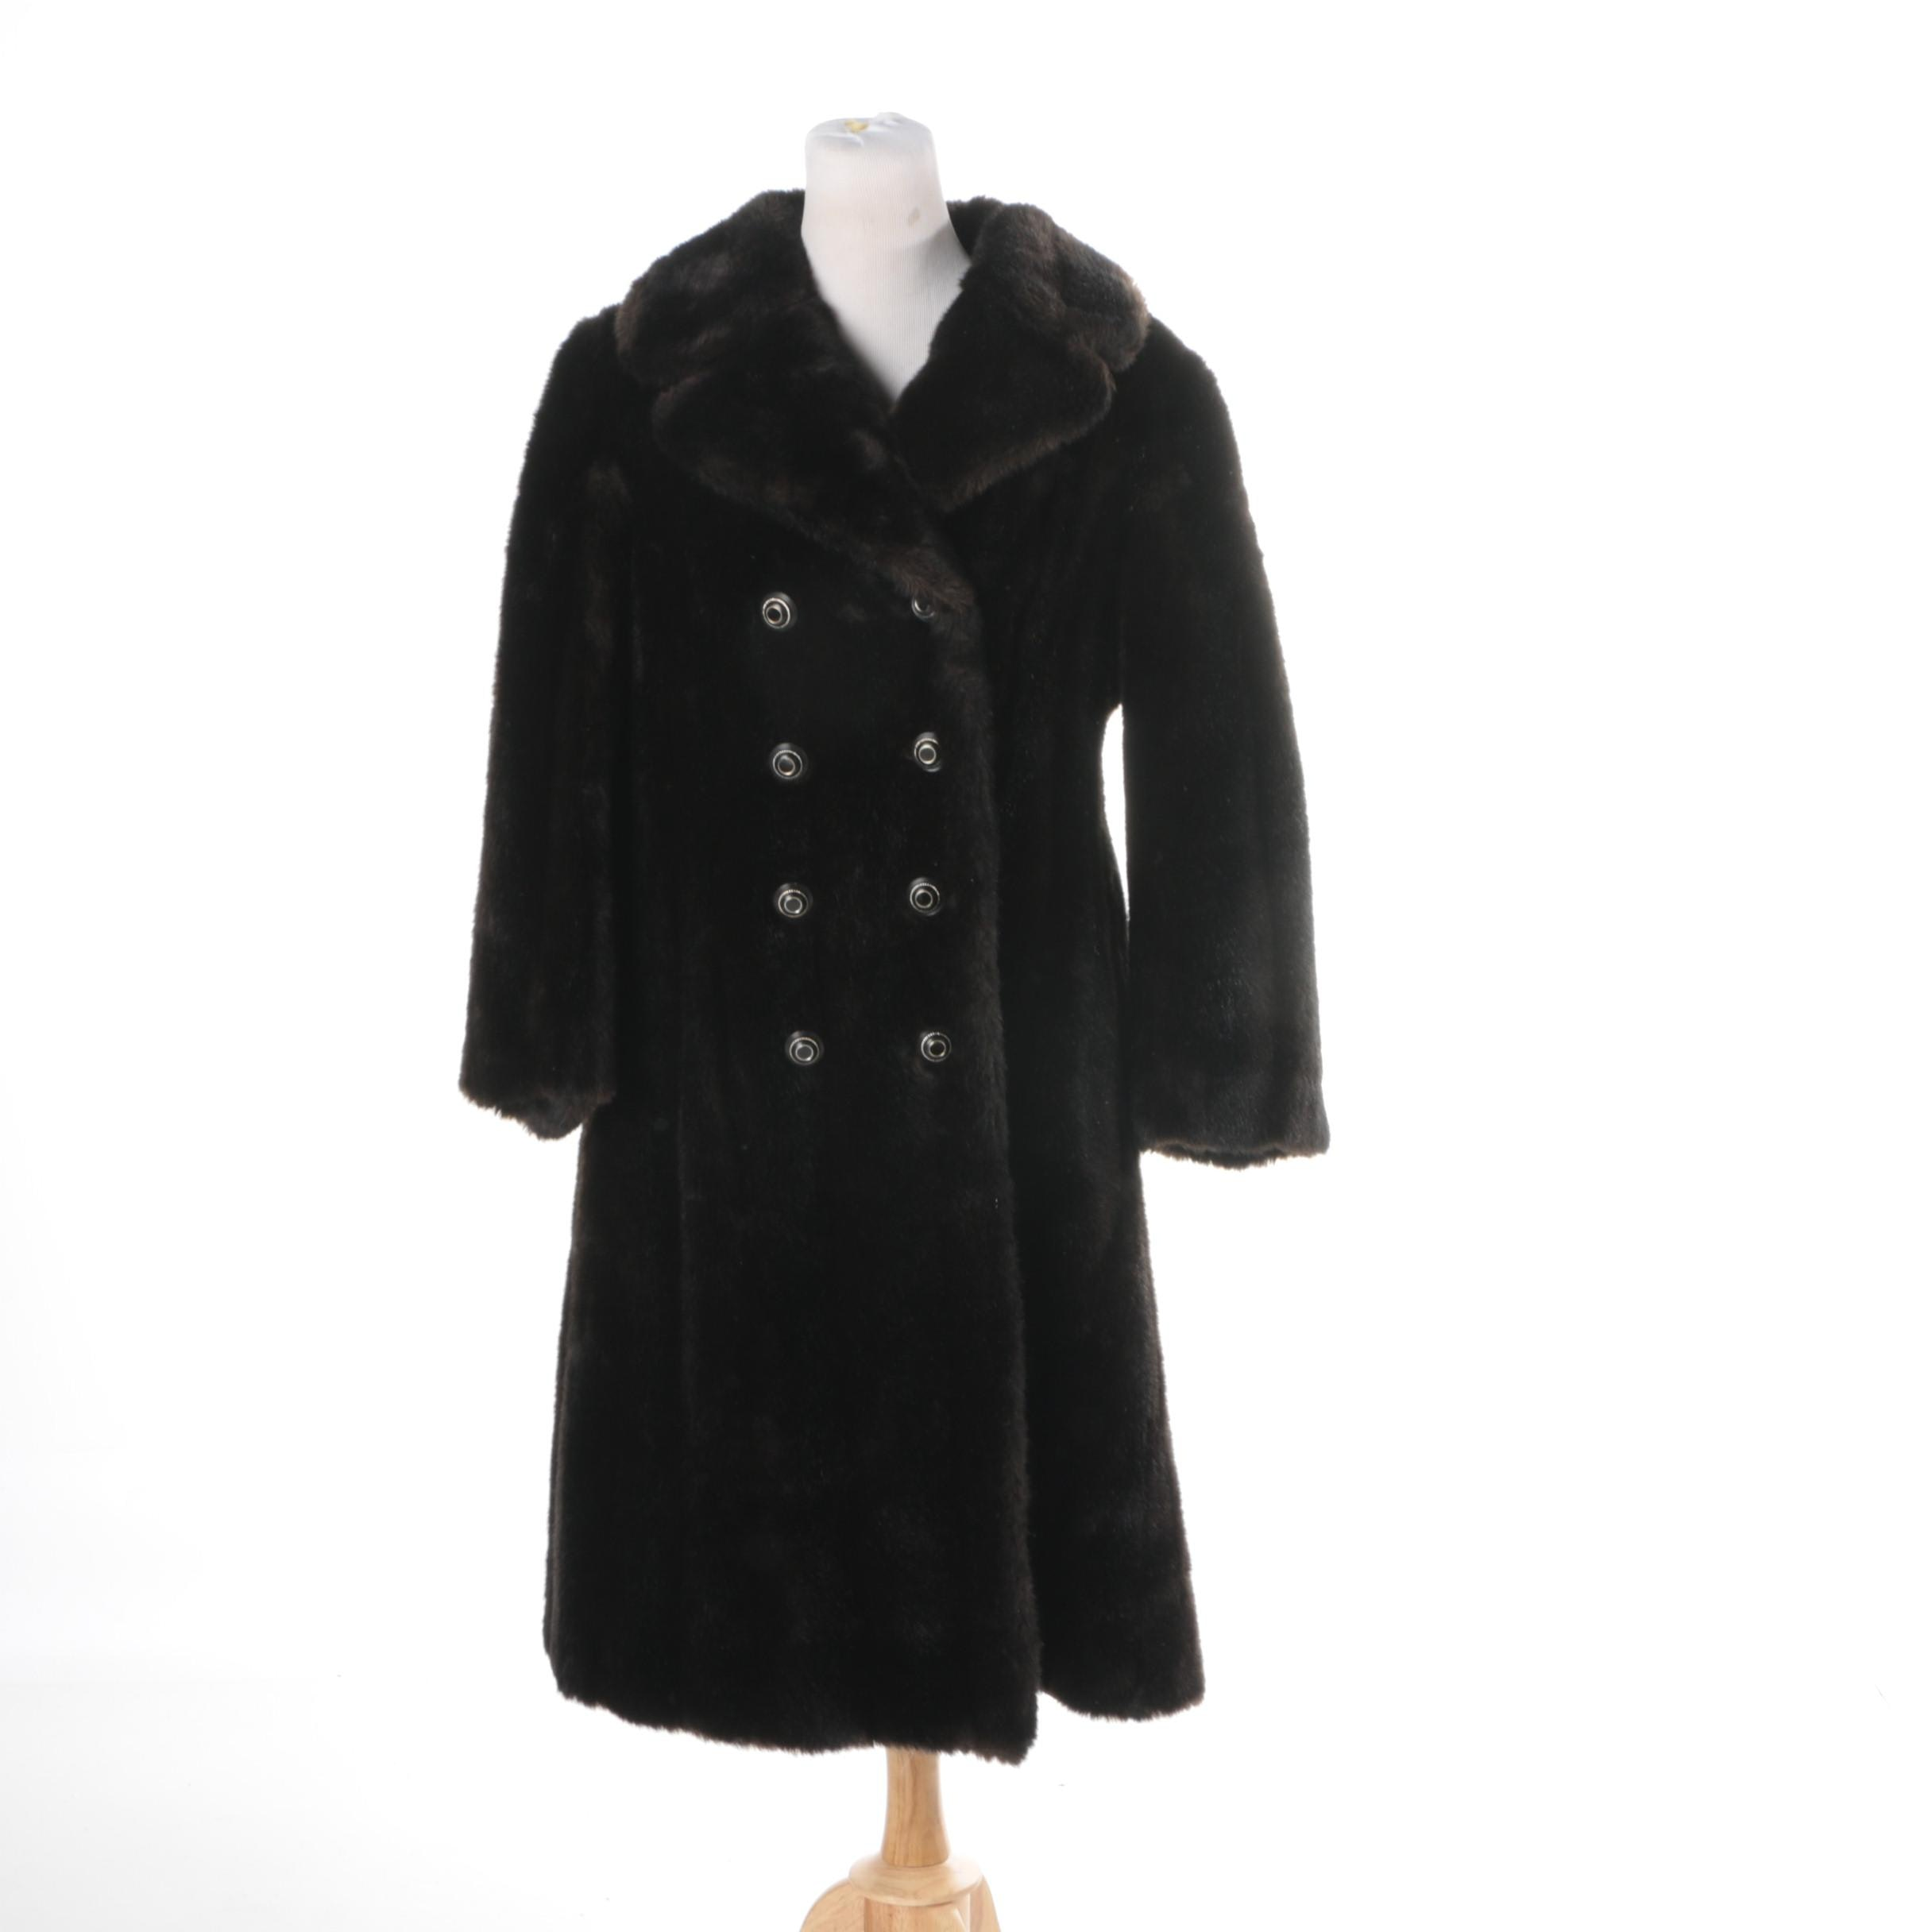 Women's Vintage Faux Fur Coat